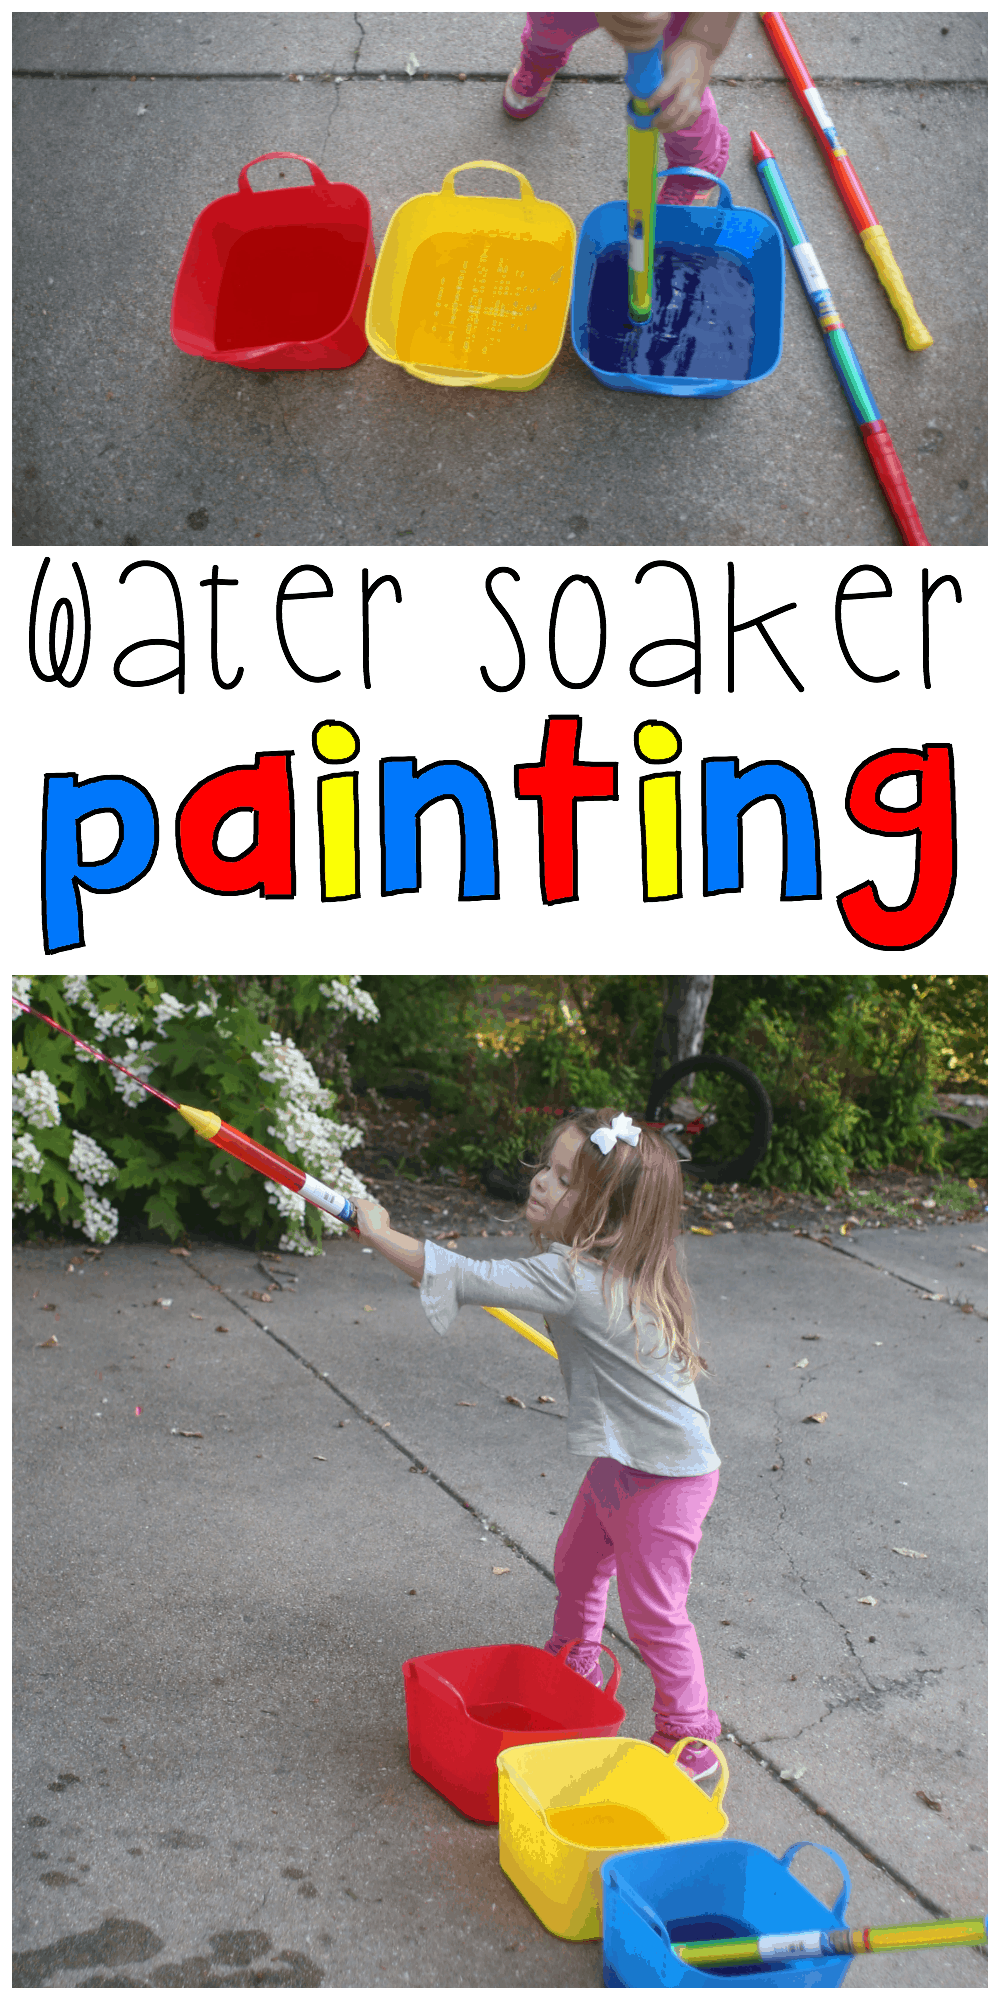 water soaker painting for toddlers i can teach my child